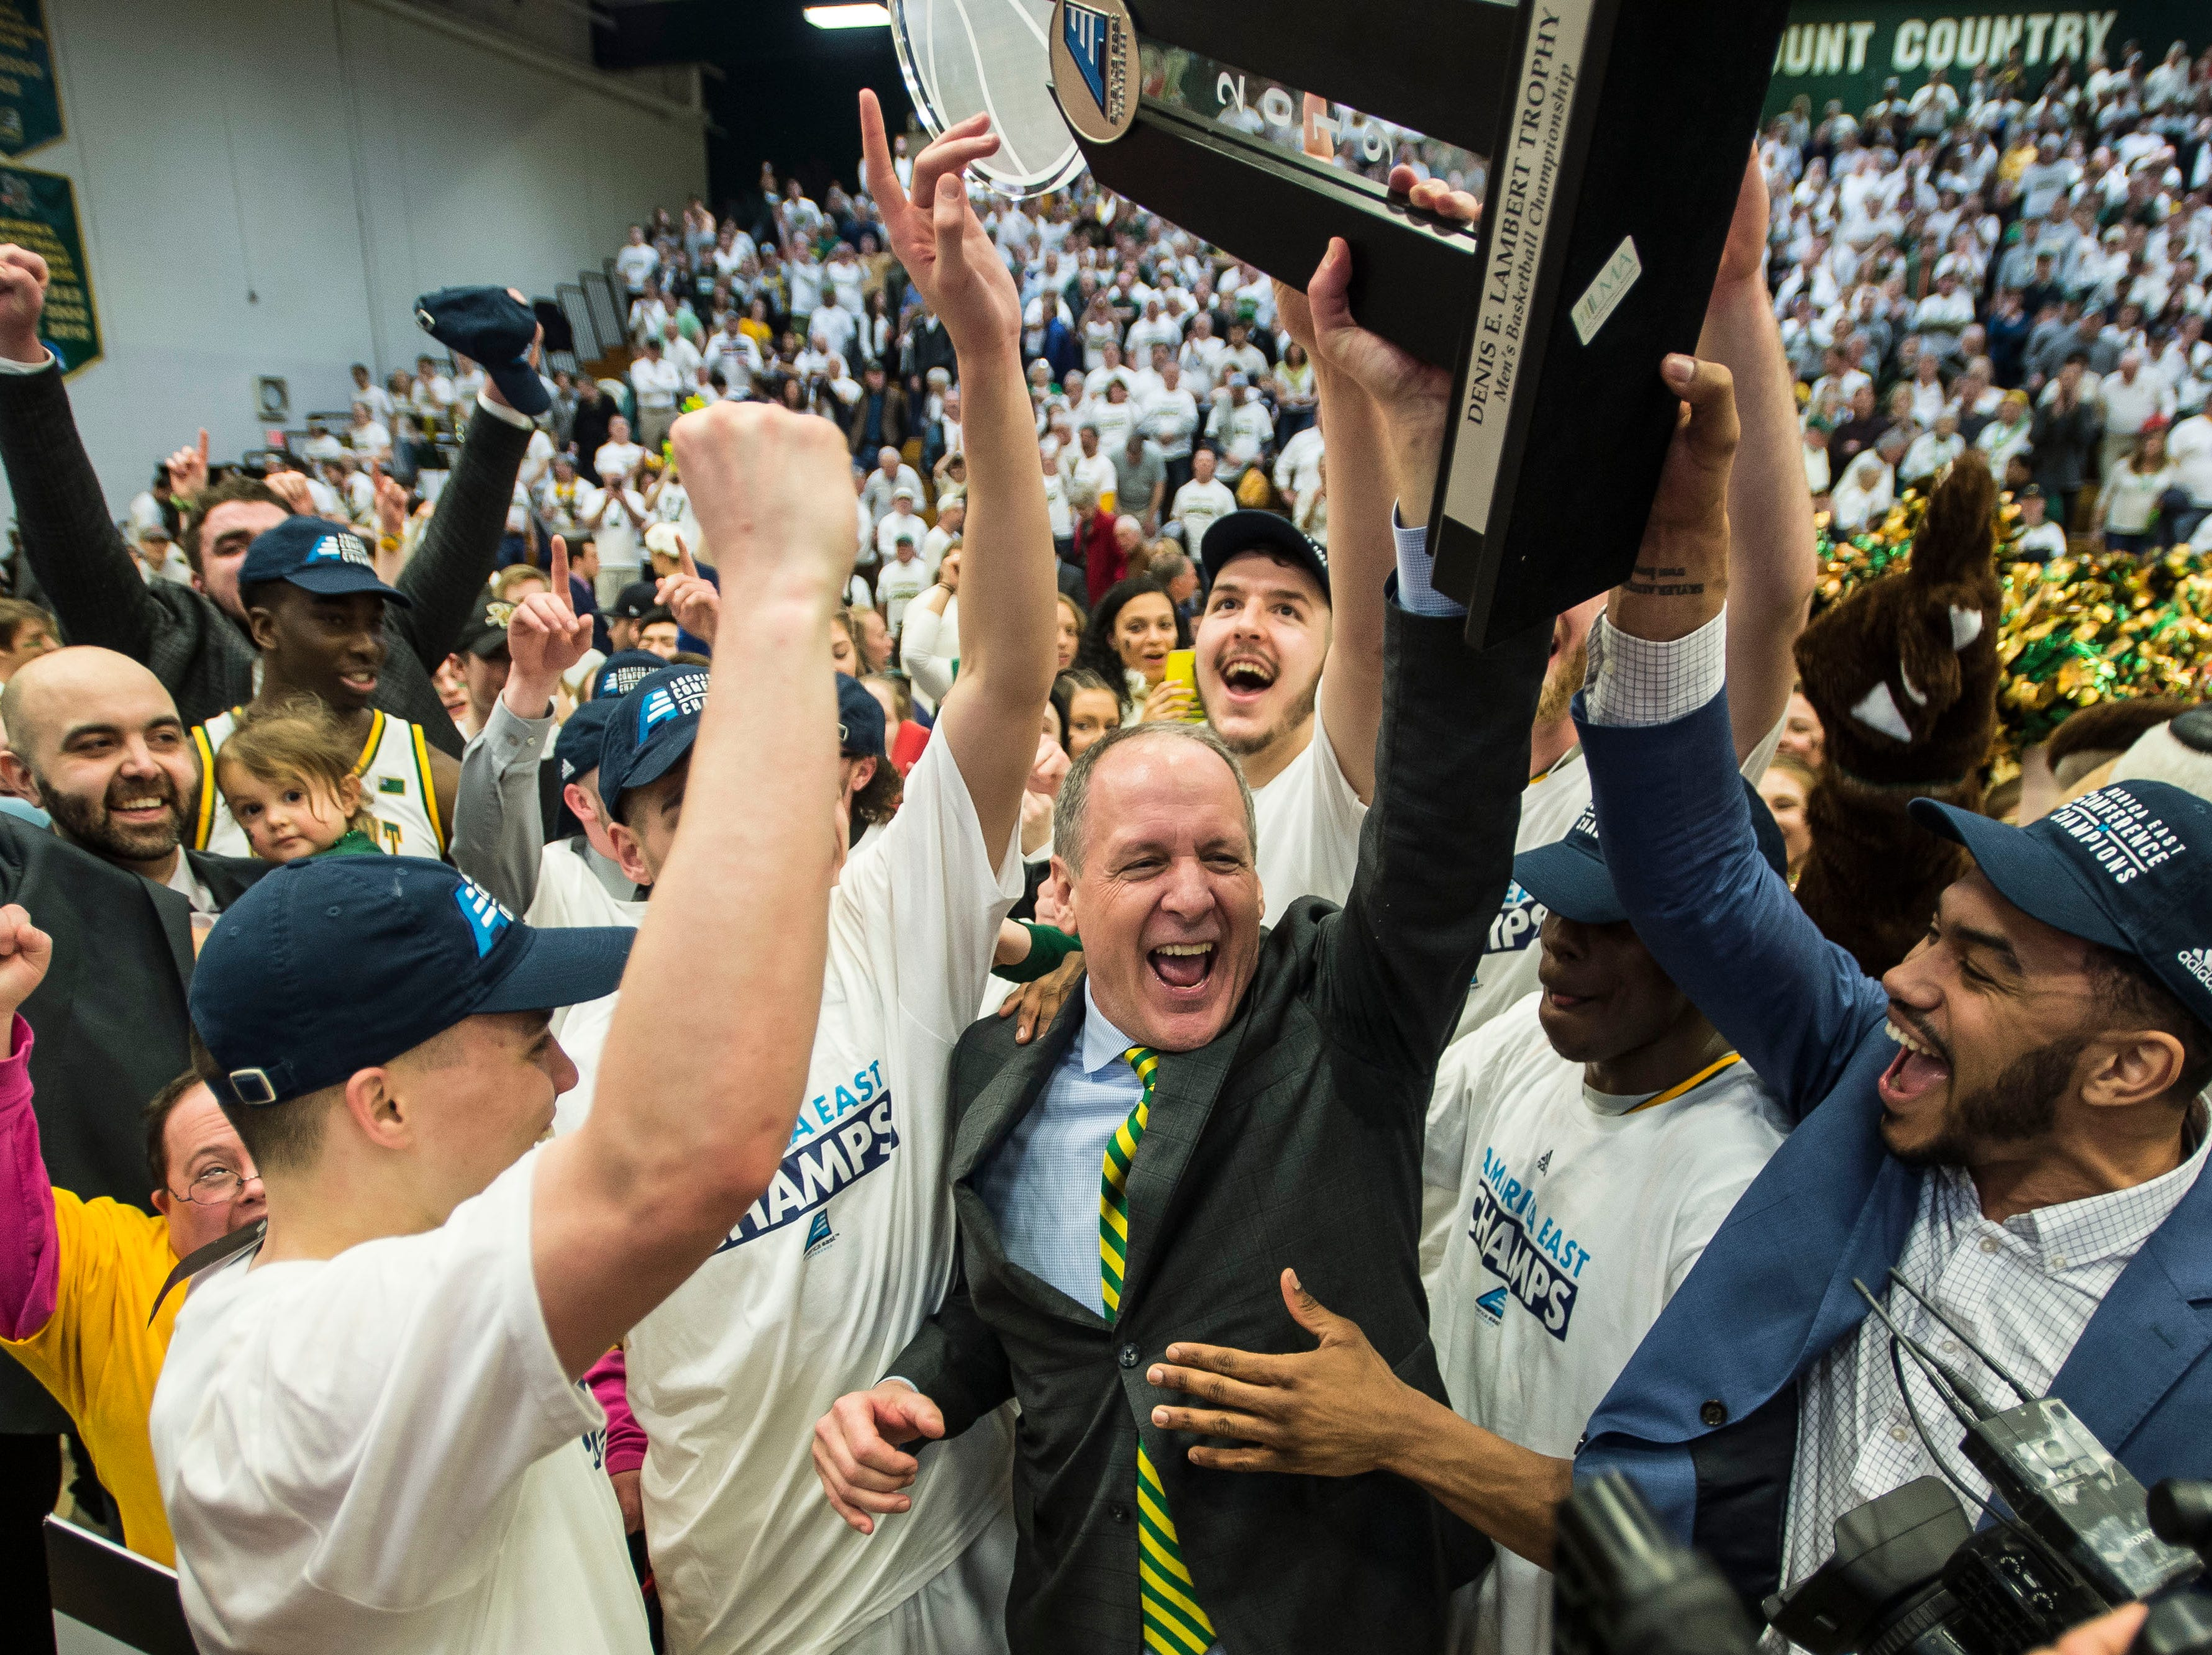 UVM Men's basketball Head Coach John Becker celebrates with his team during the America East Championship in Burlington, Vt., on Saturday, March 16, 2019. UVM won, 66-49 and will head to the NCAA March Madness Tournament.